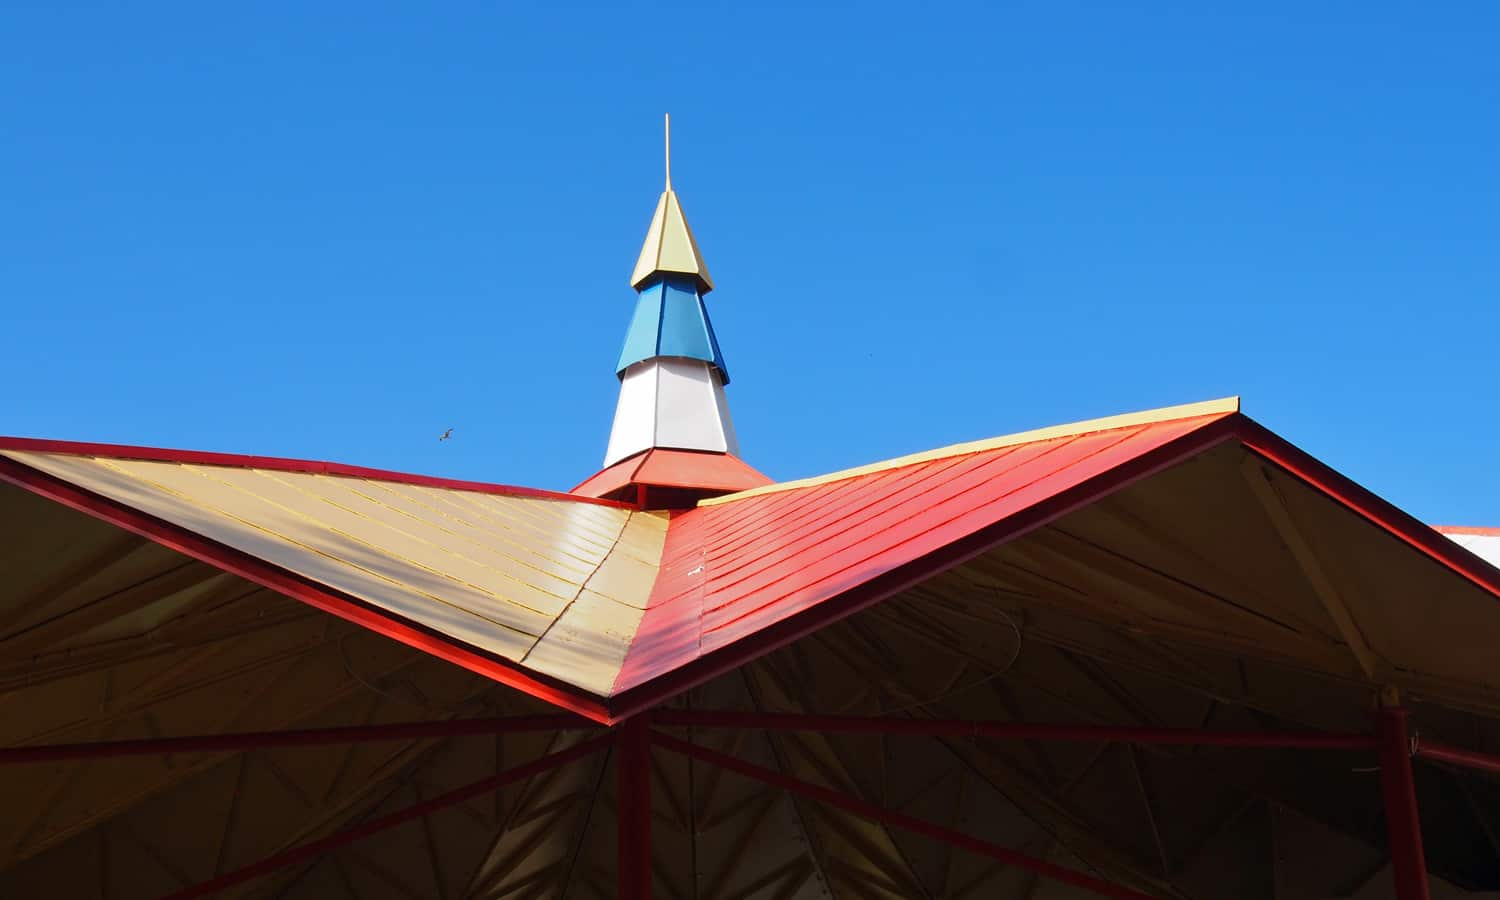 Detail of the pavilion roof top with its festive colours